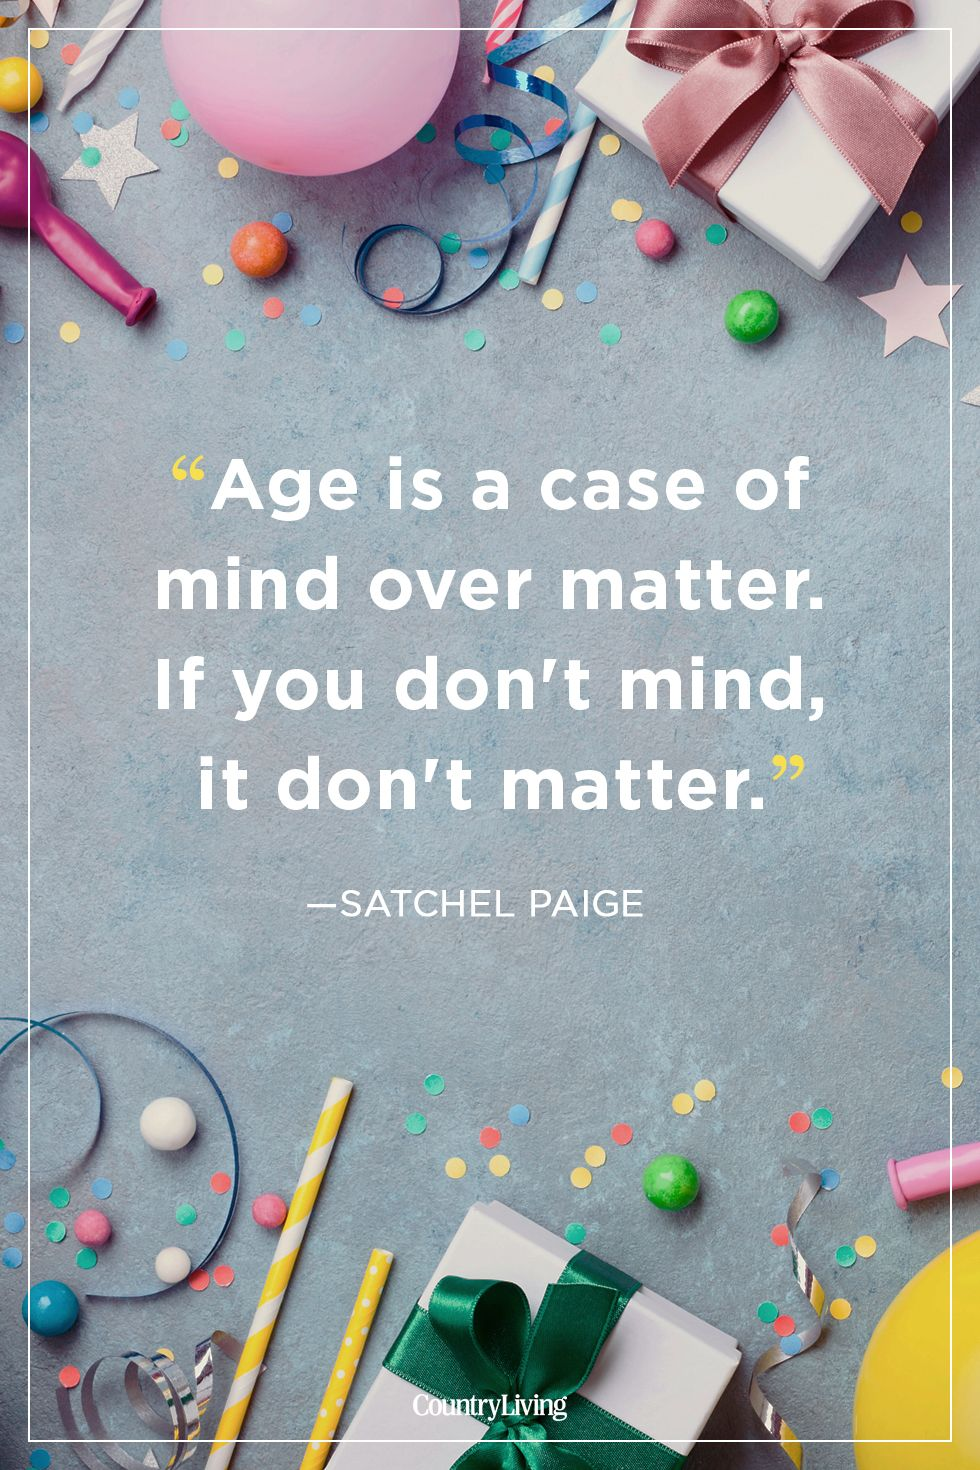 35 Best Birthday Quotes - Happy Birthday Wishes, Quotes, and Messages